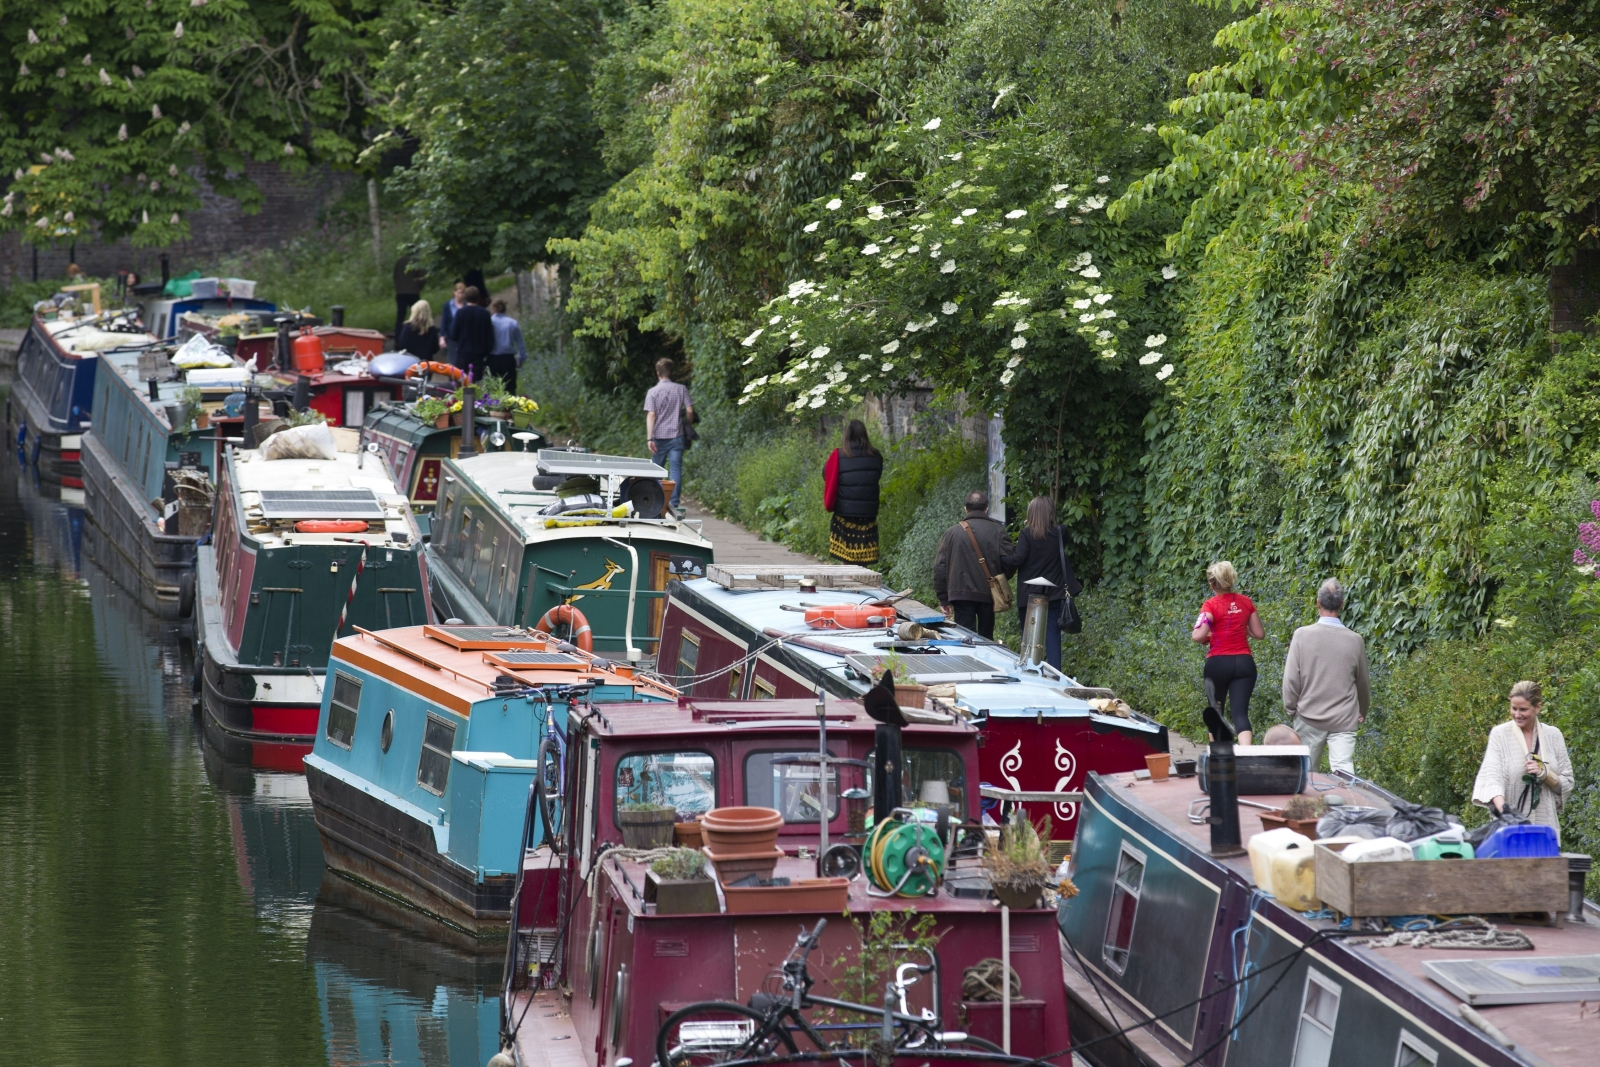 regents canal boat london